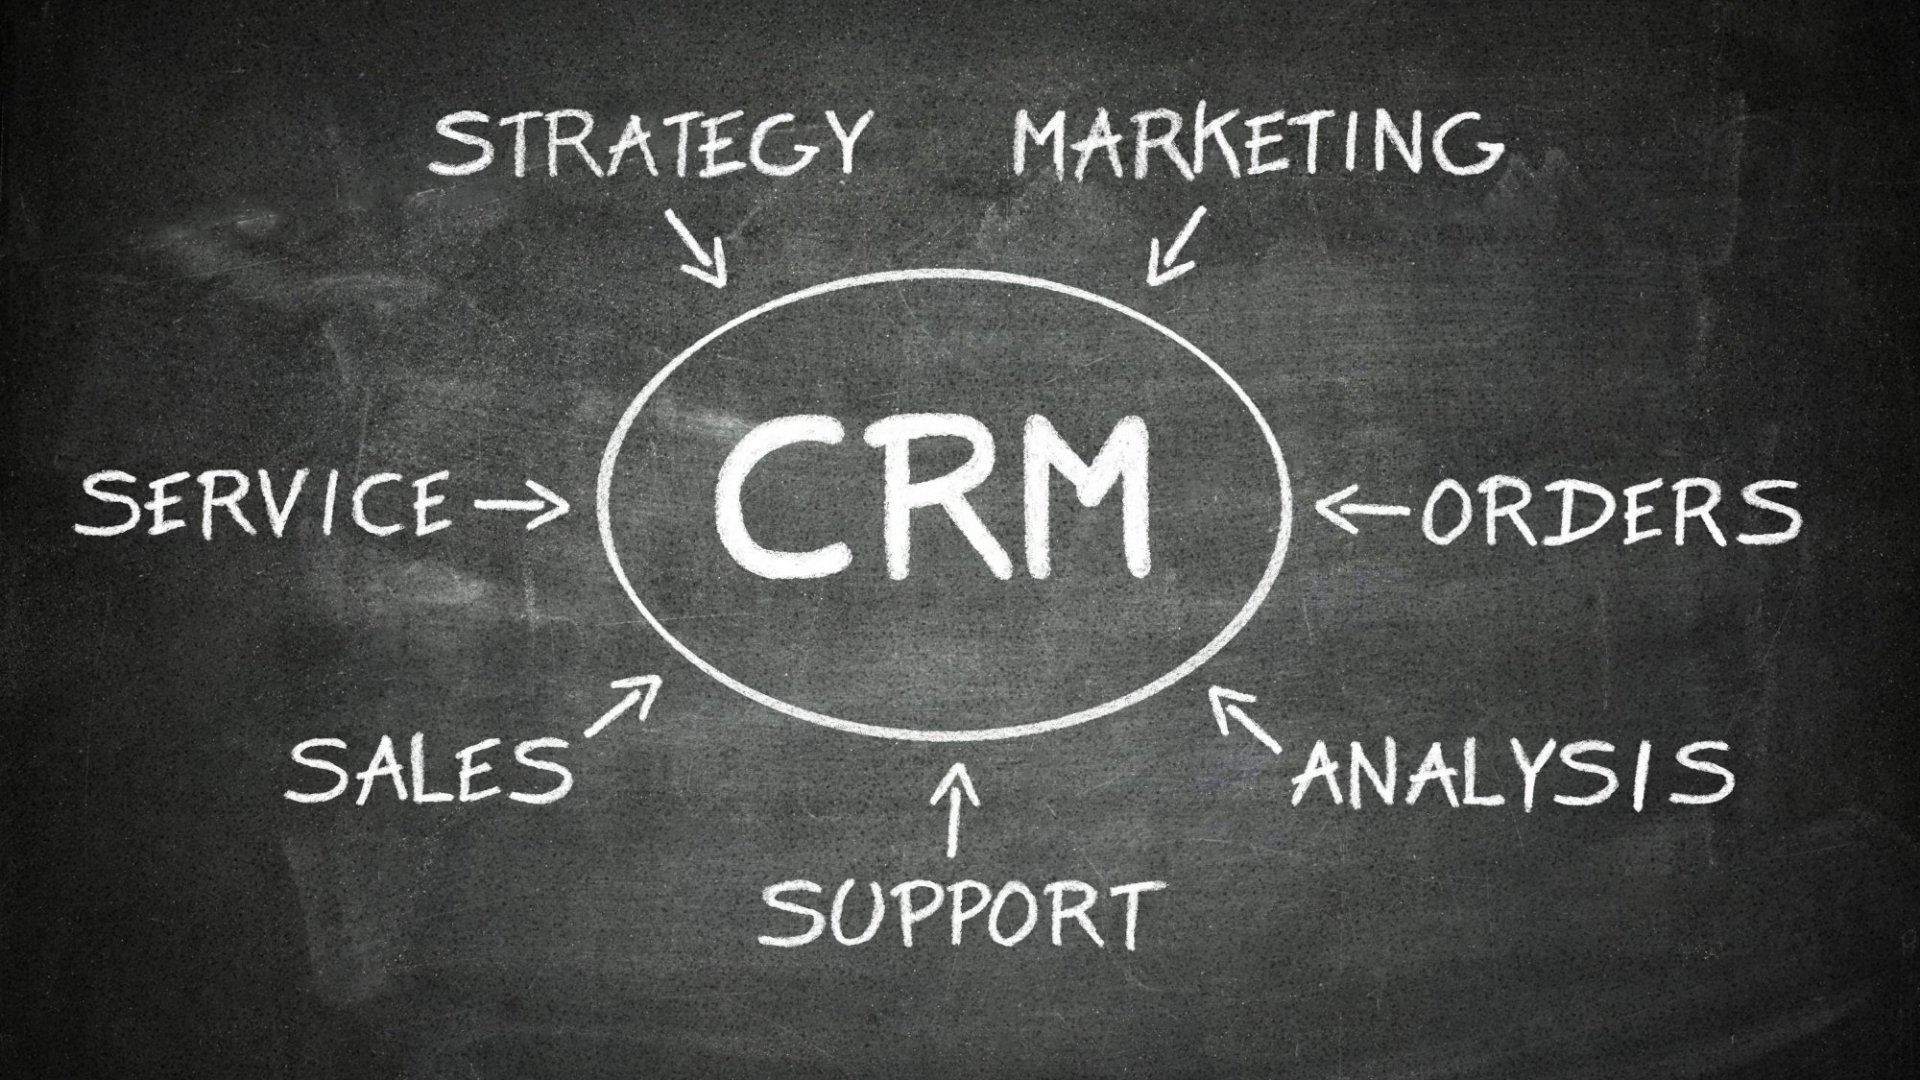 FinCRM: A 'Made in India, Made for the World' CRM solution.